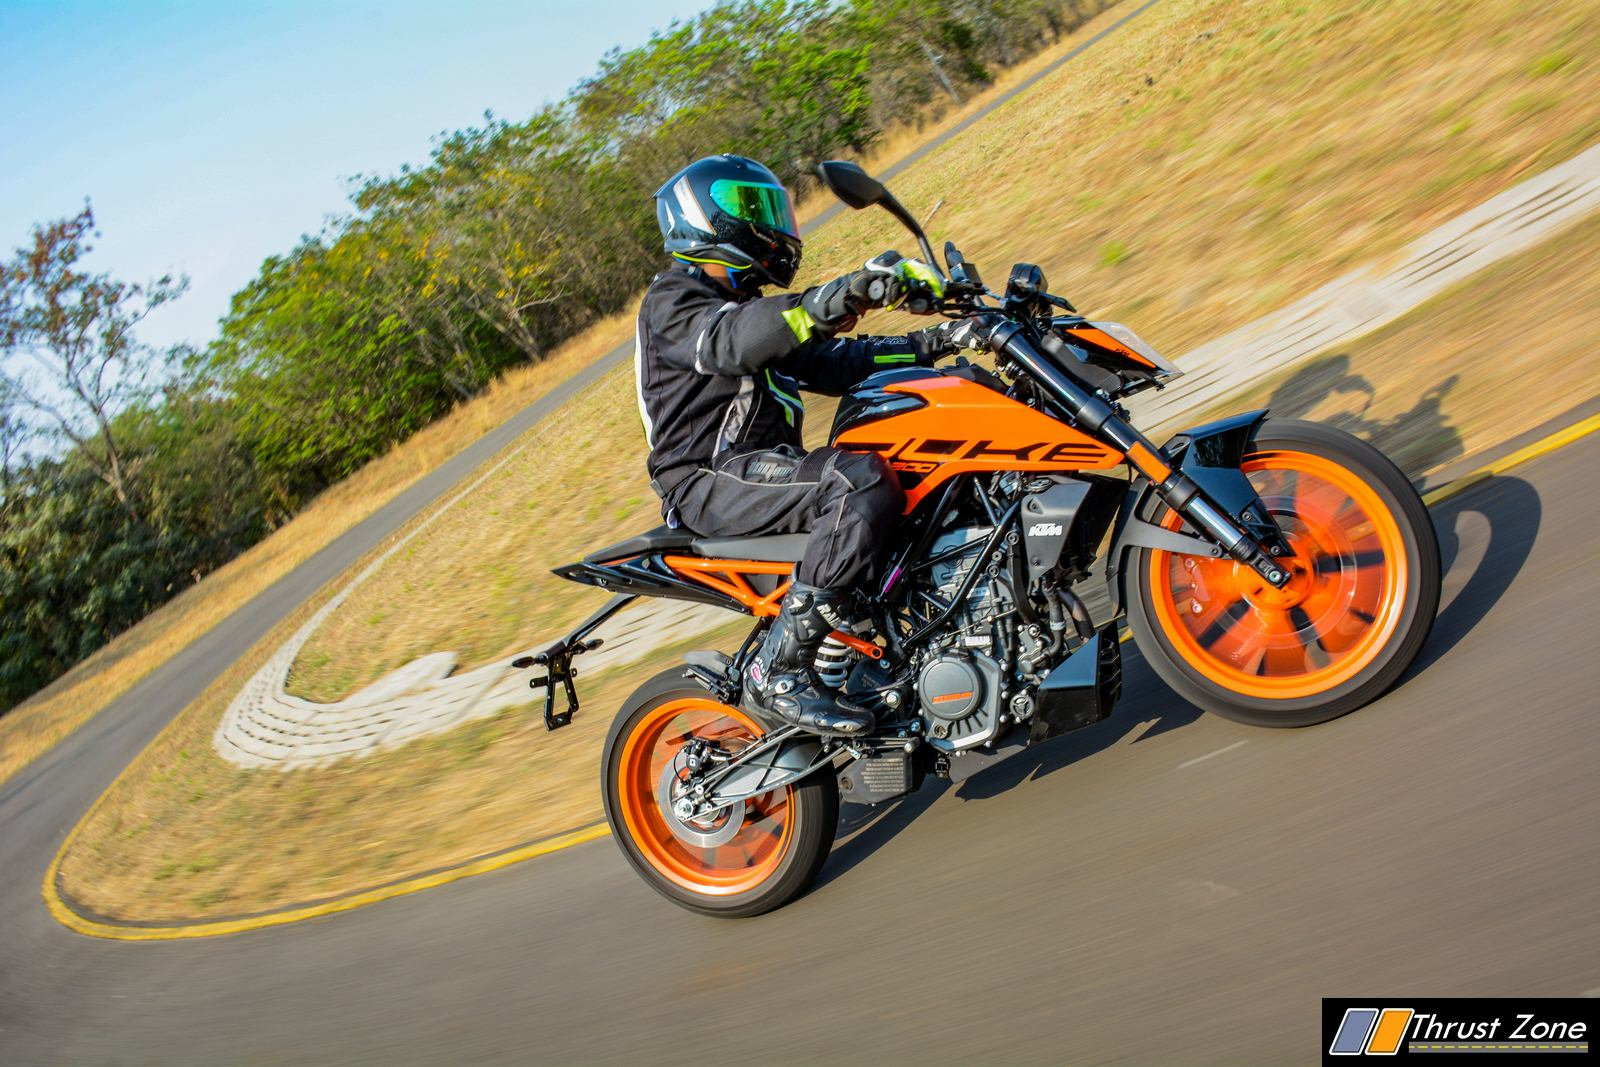 2020-KTM-Duke-200-BS6-Review (3)